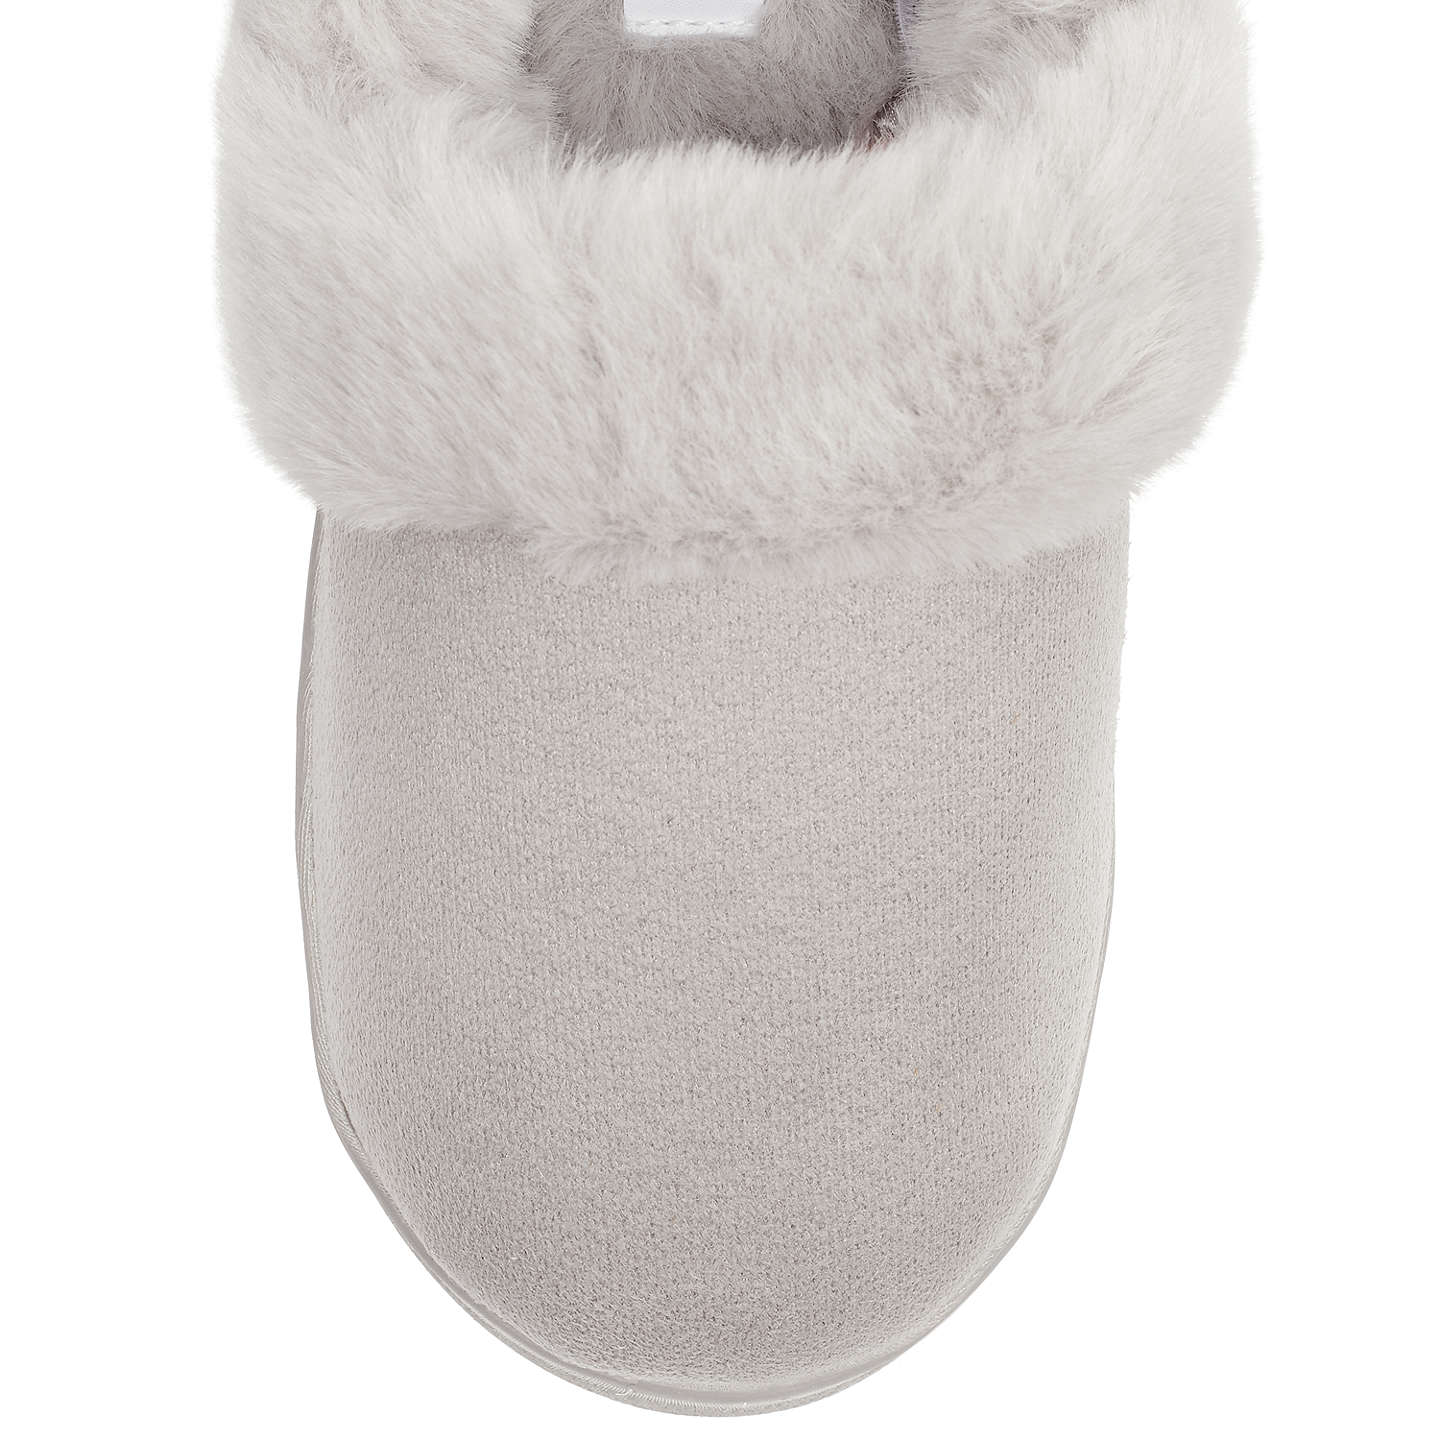 BuyJohn Lewis Comfort Cuff Slippers, Marl Grey, 3-4 Online at johnlewis.com